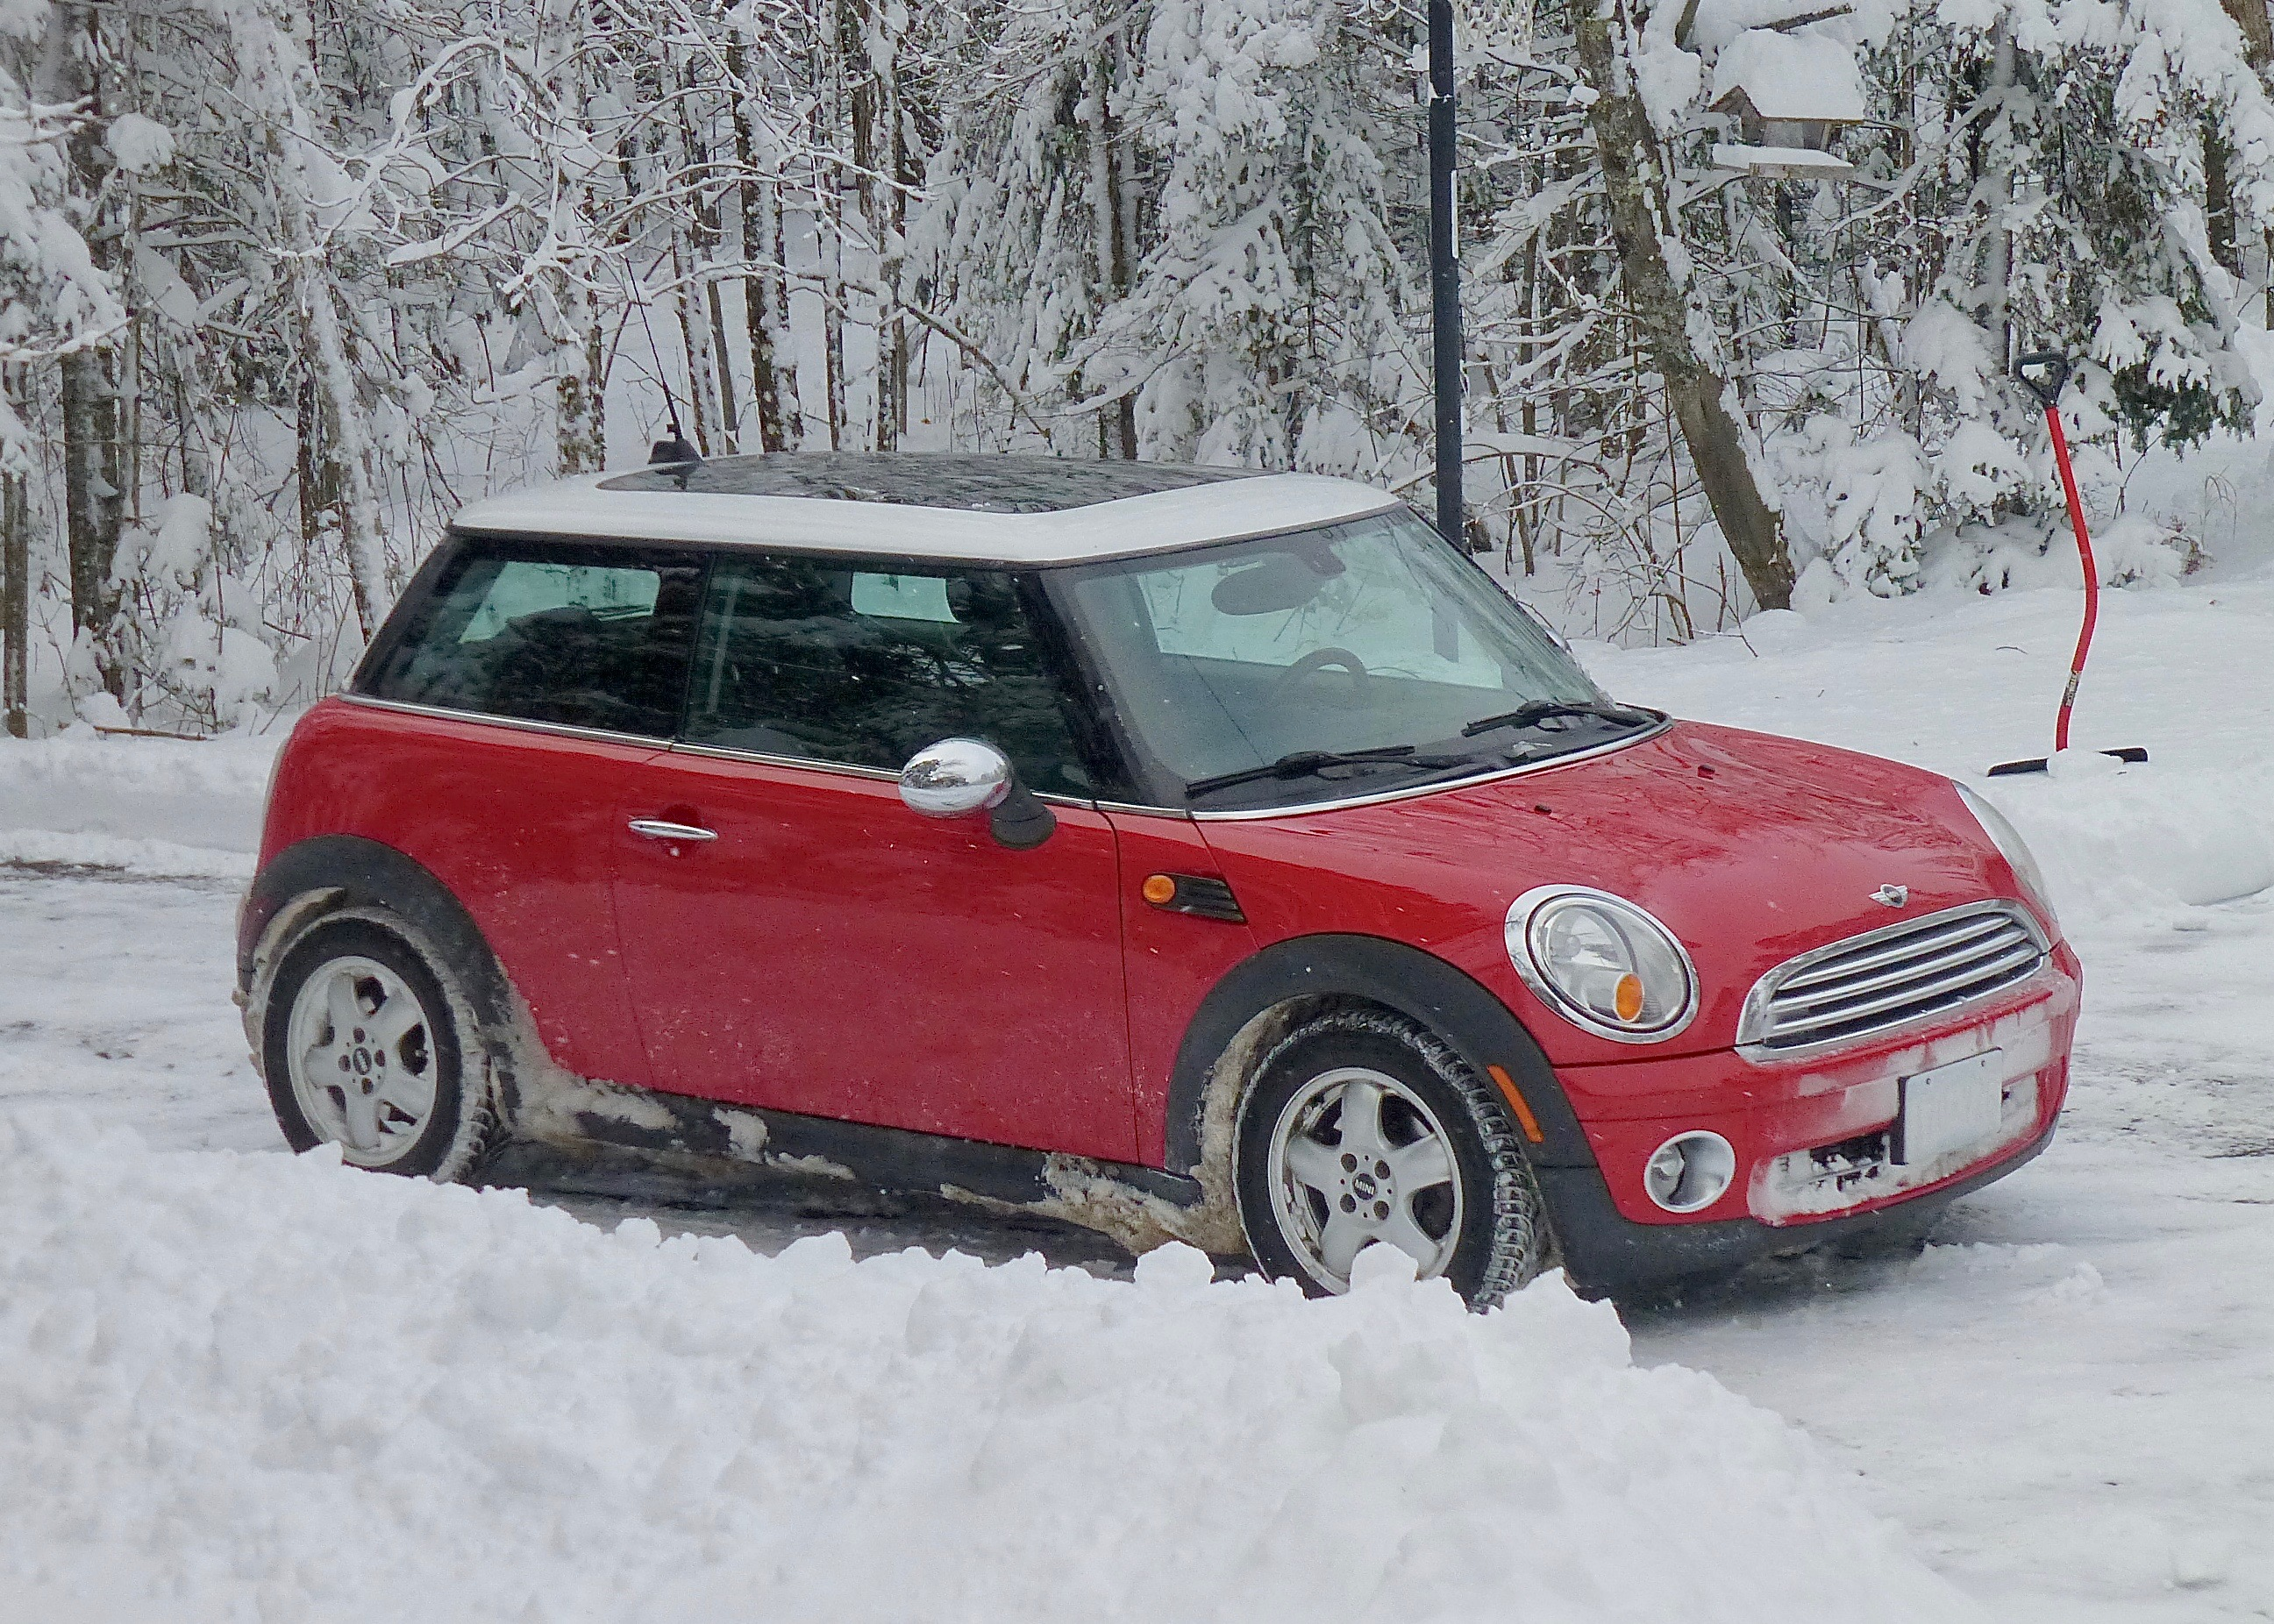 Trusty 2007 family Mini Cooper proved loyal conveyance through all-night blizzard.